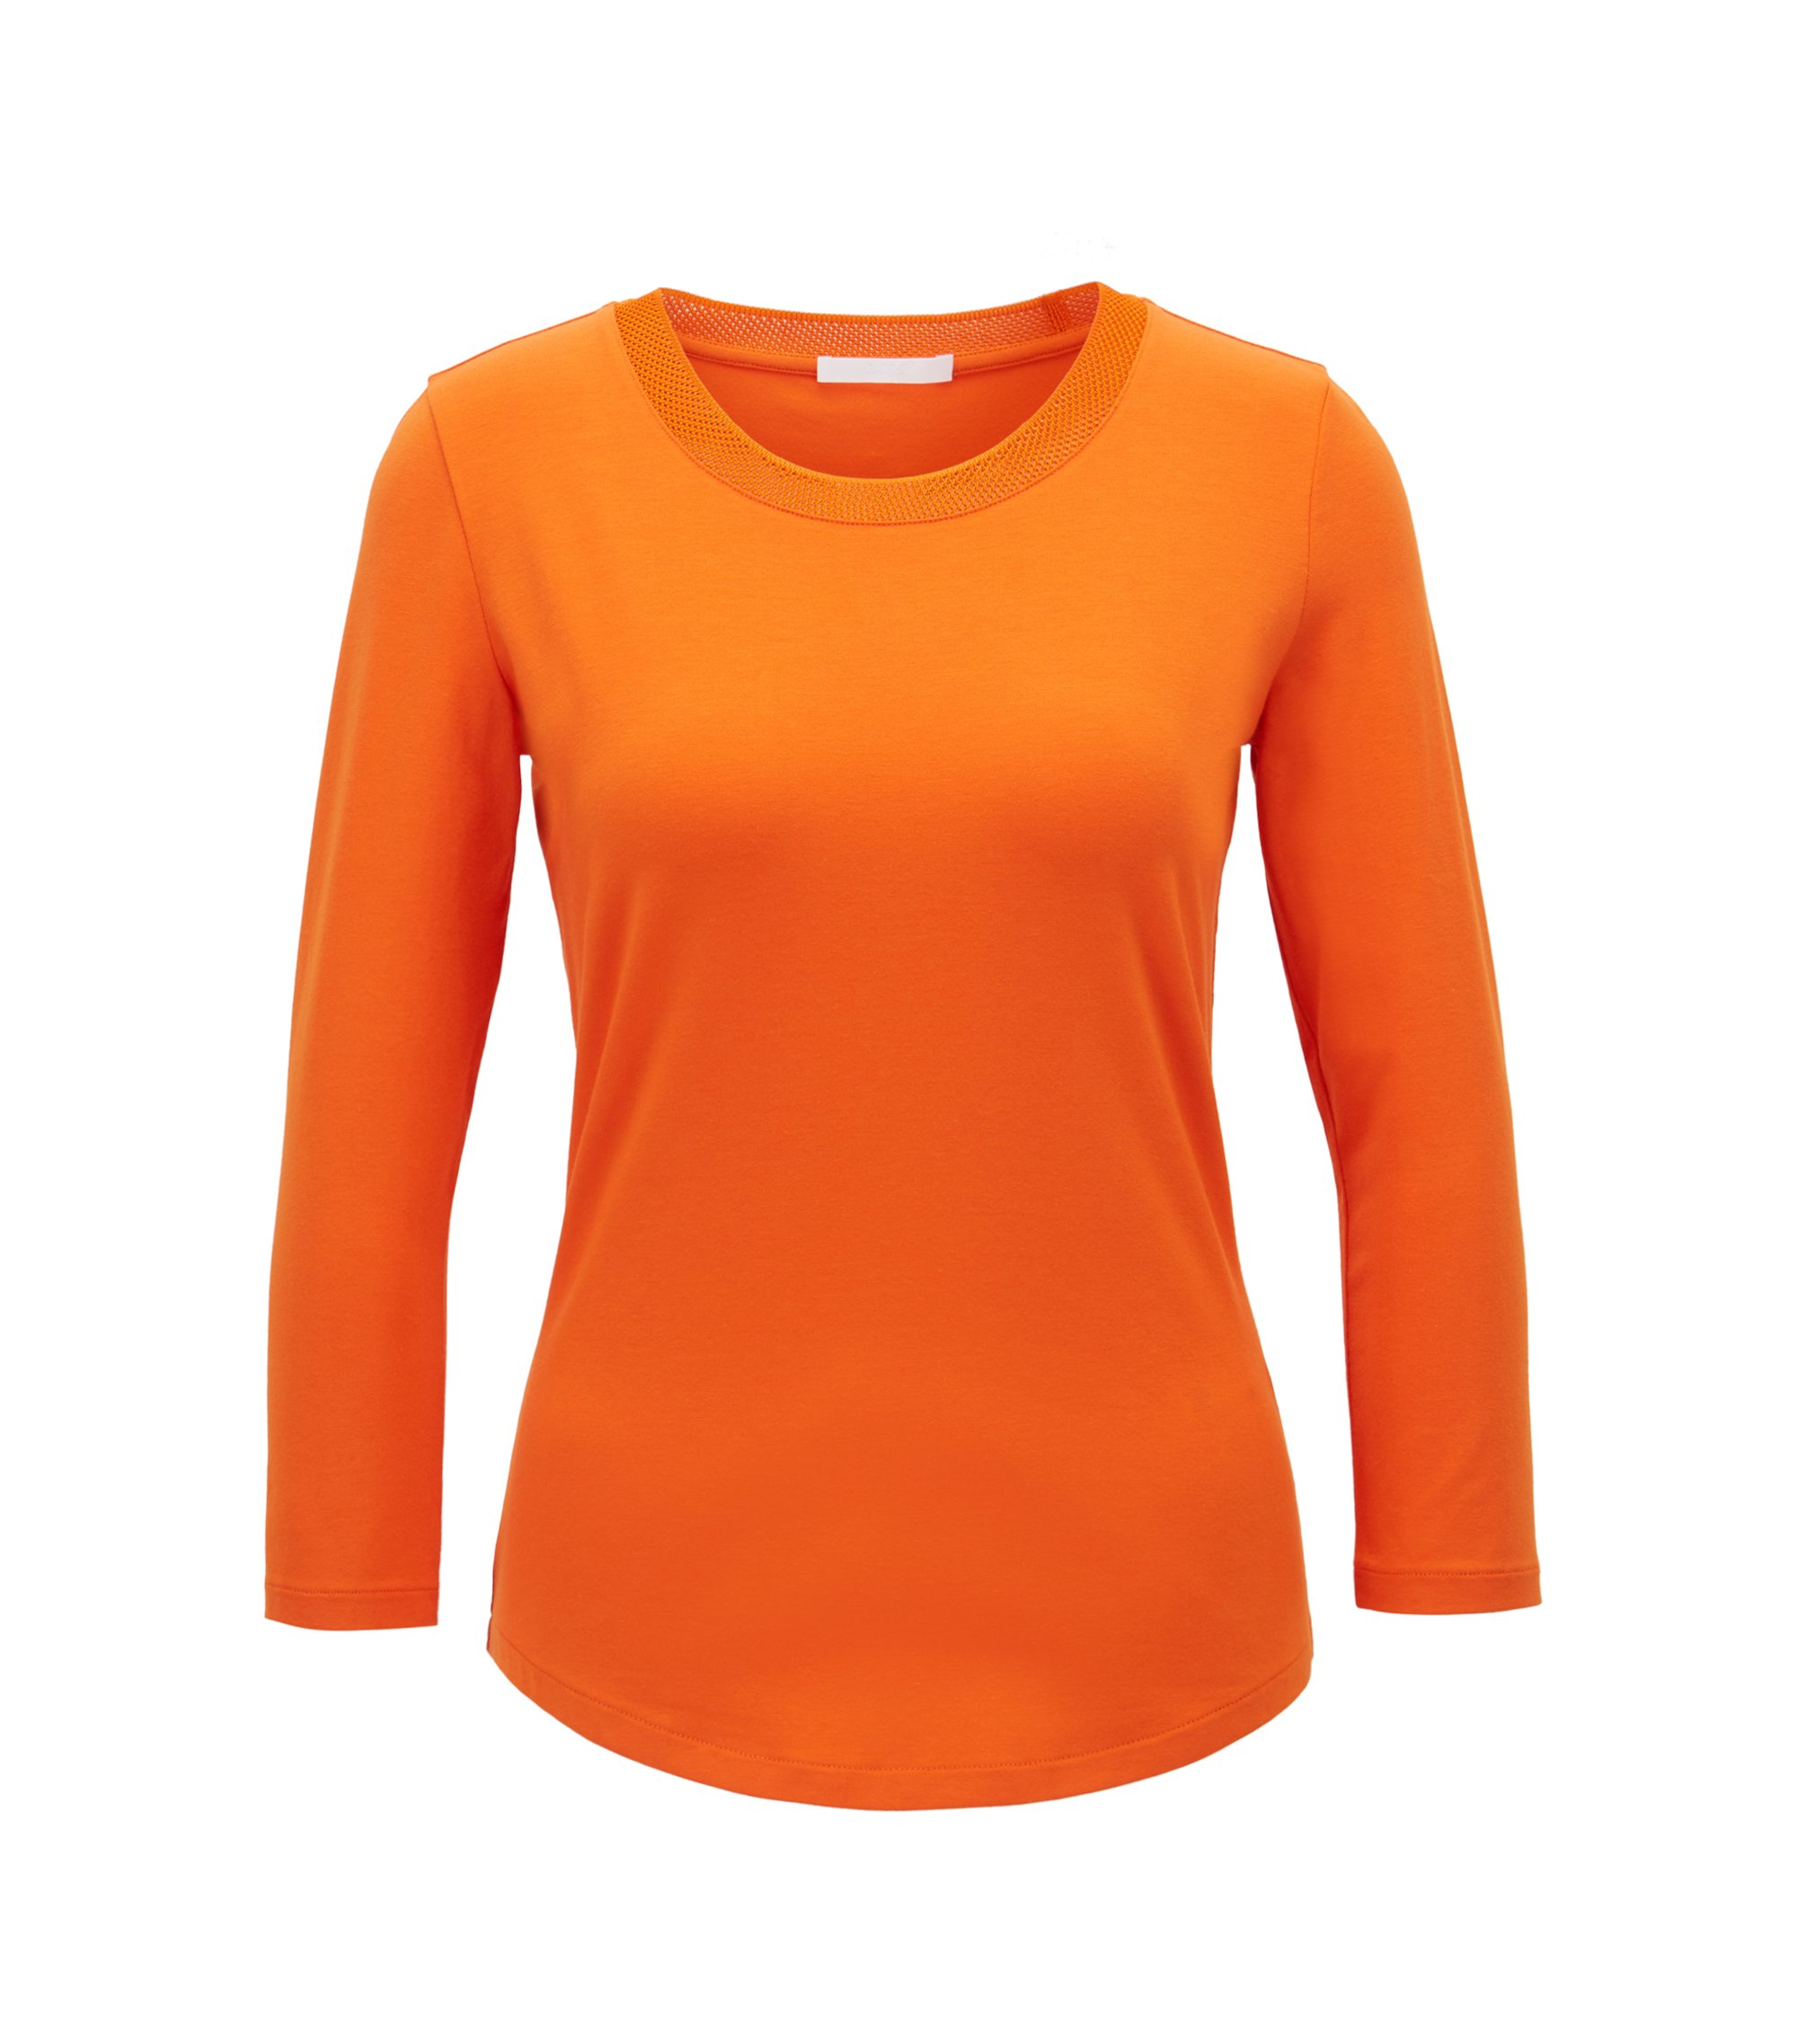 Three-quarter sleeve top with mesh neckline, Orange